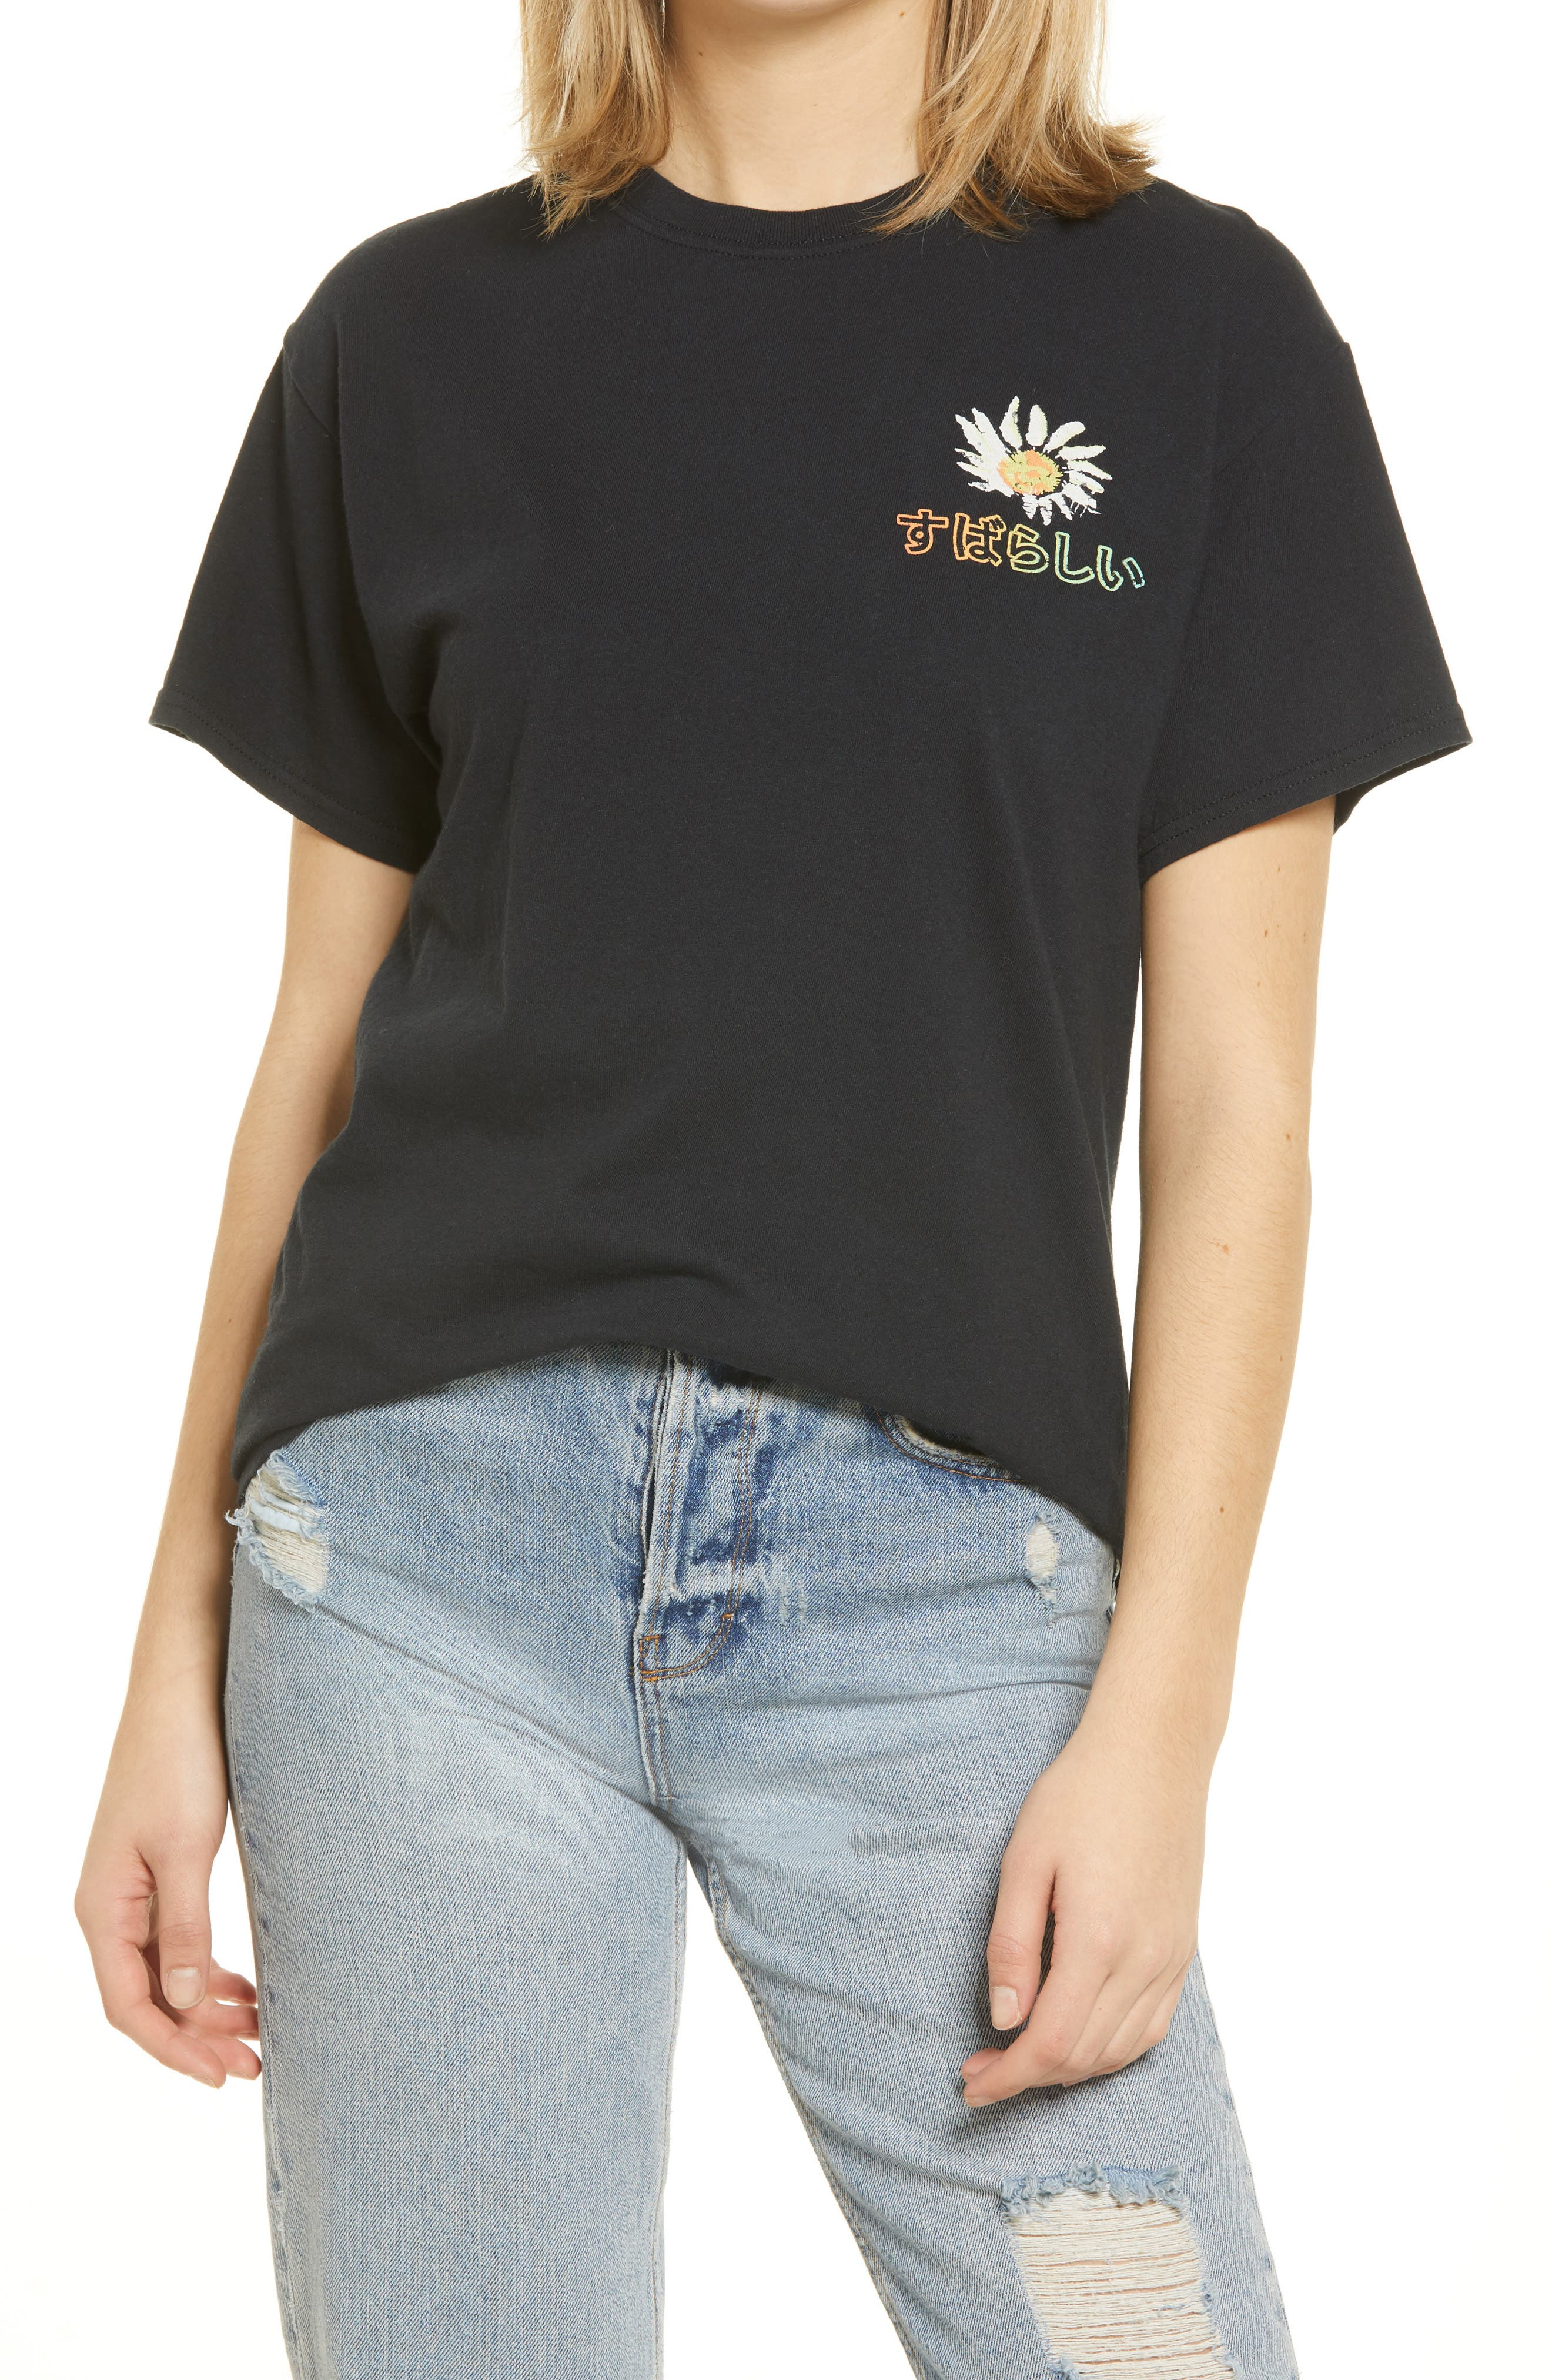 Vinyl Icons Make Beautiful Things Graphic Tee | Nordstrom